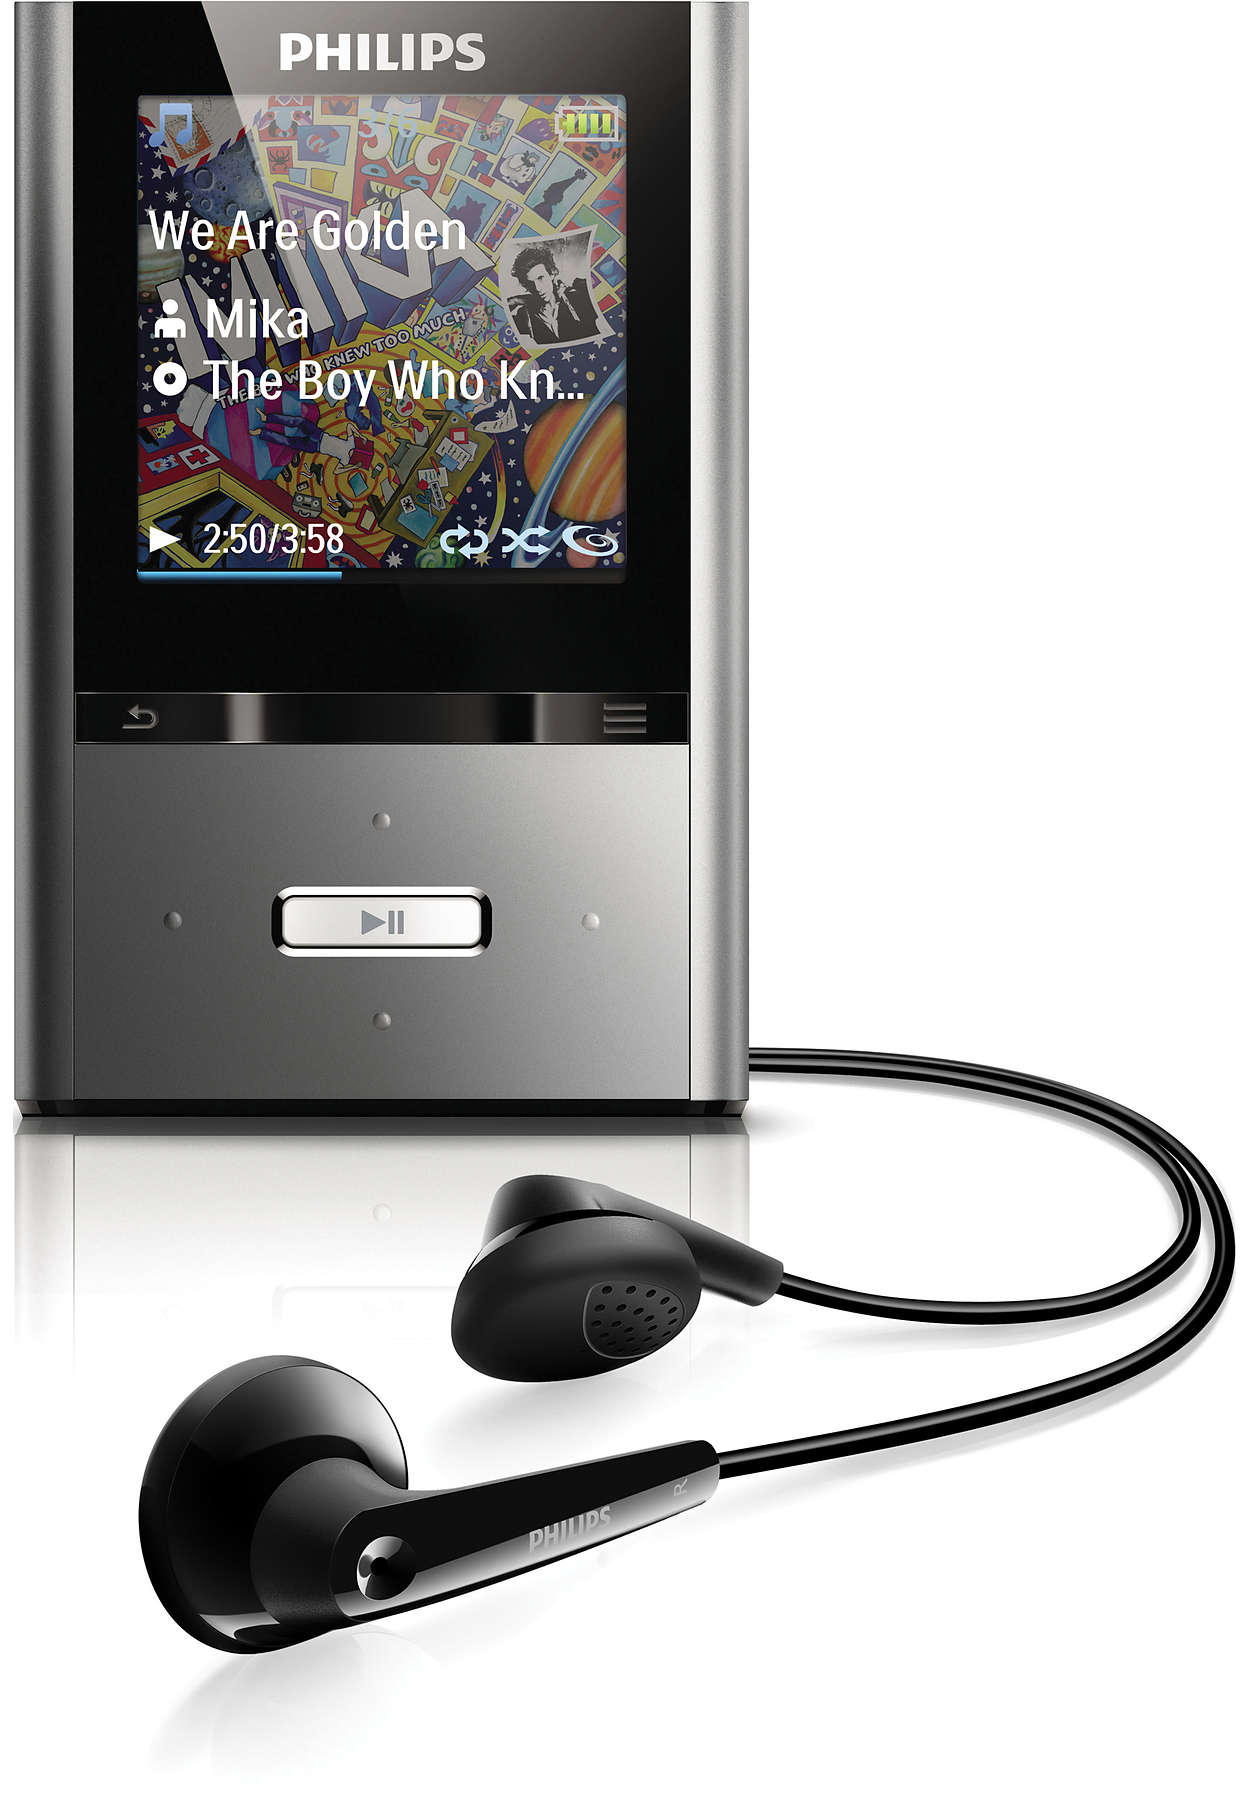 Mp3: MP3 Video Player SA2VBE08K/17